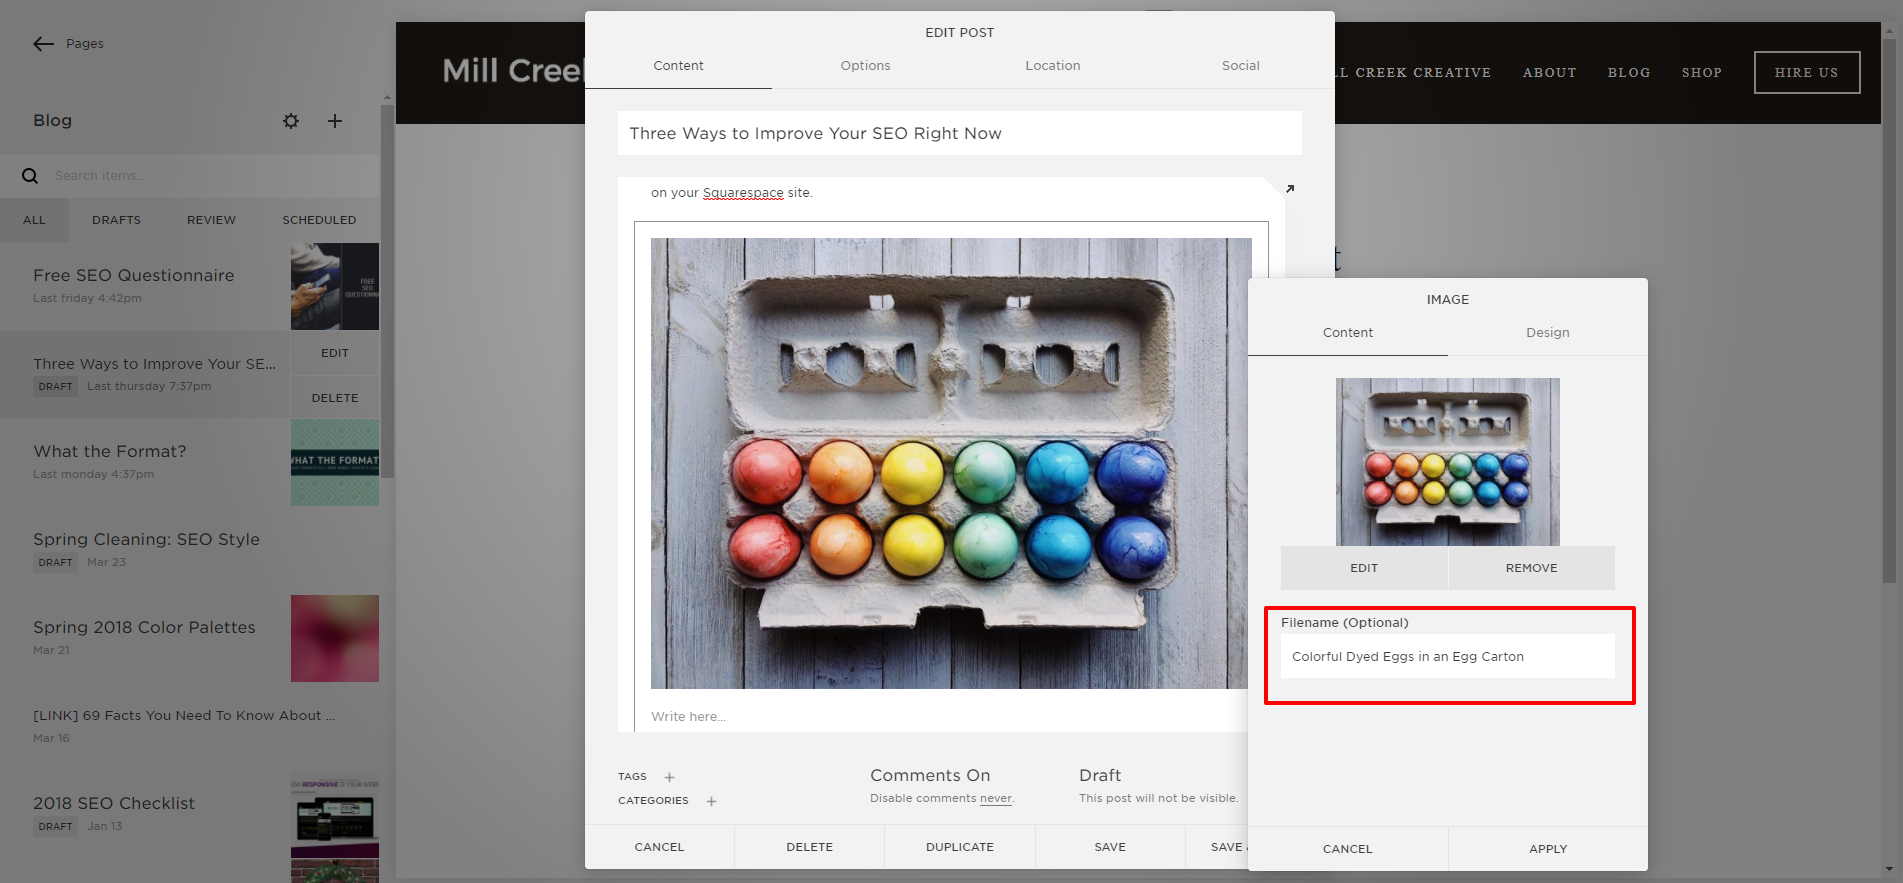 How To Add an Image Alt Tag in Squarespace